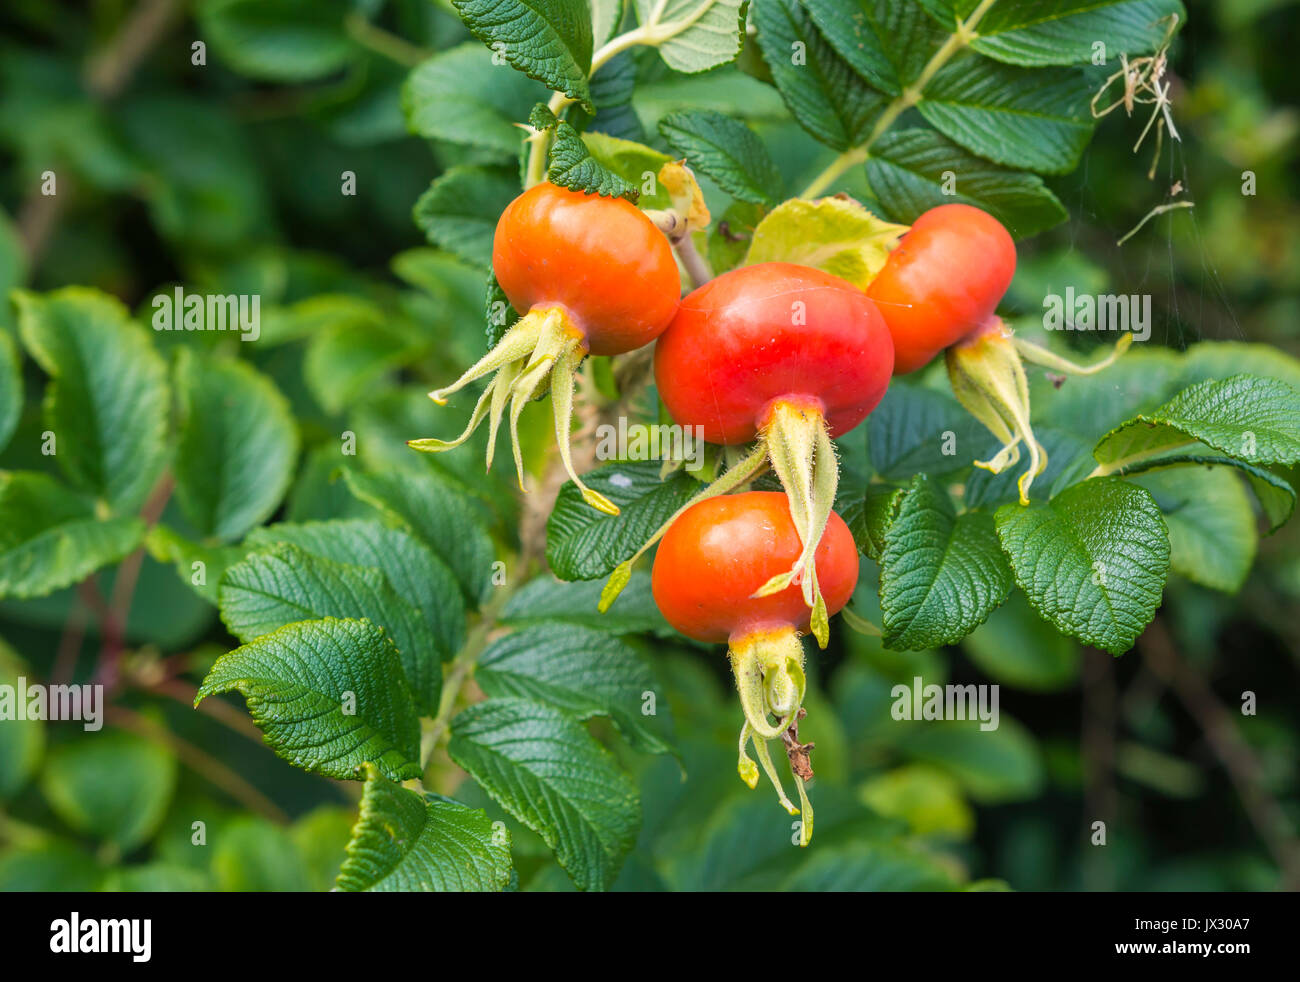 Rose Hip, also called Rose Haw and Rose Hep, an accessory fruit of the Rose plant, growing in late Summer in the UK. Red Rose Hip fruit closeup. - Stock Image